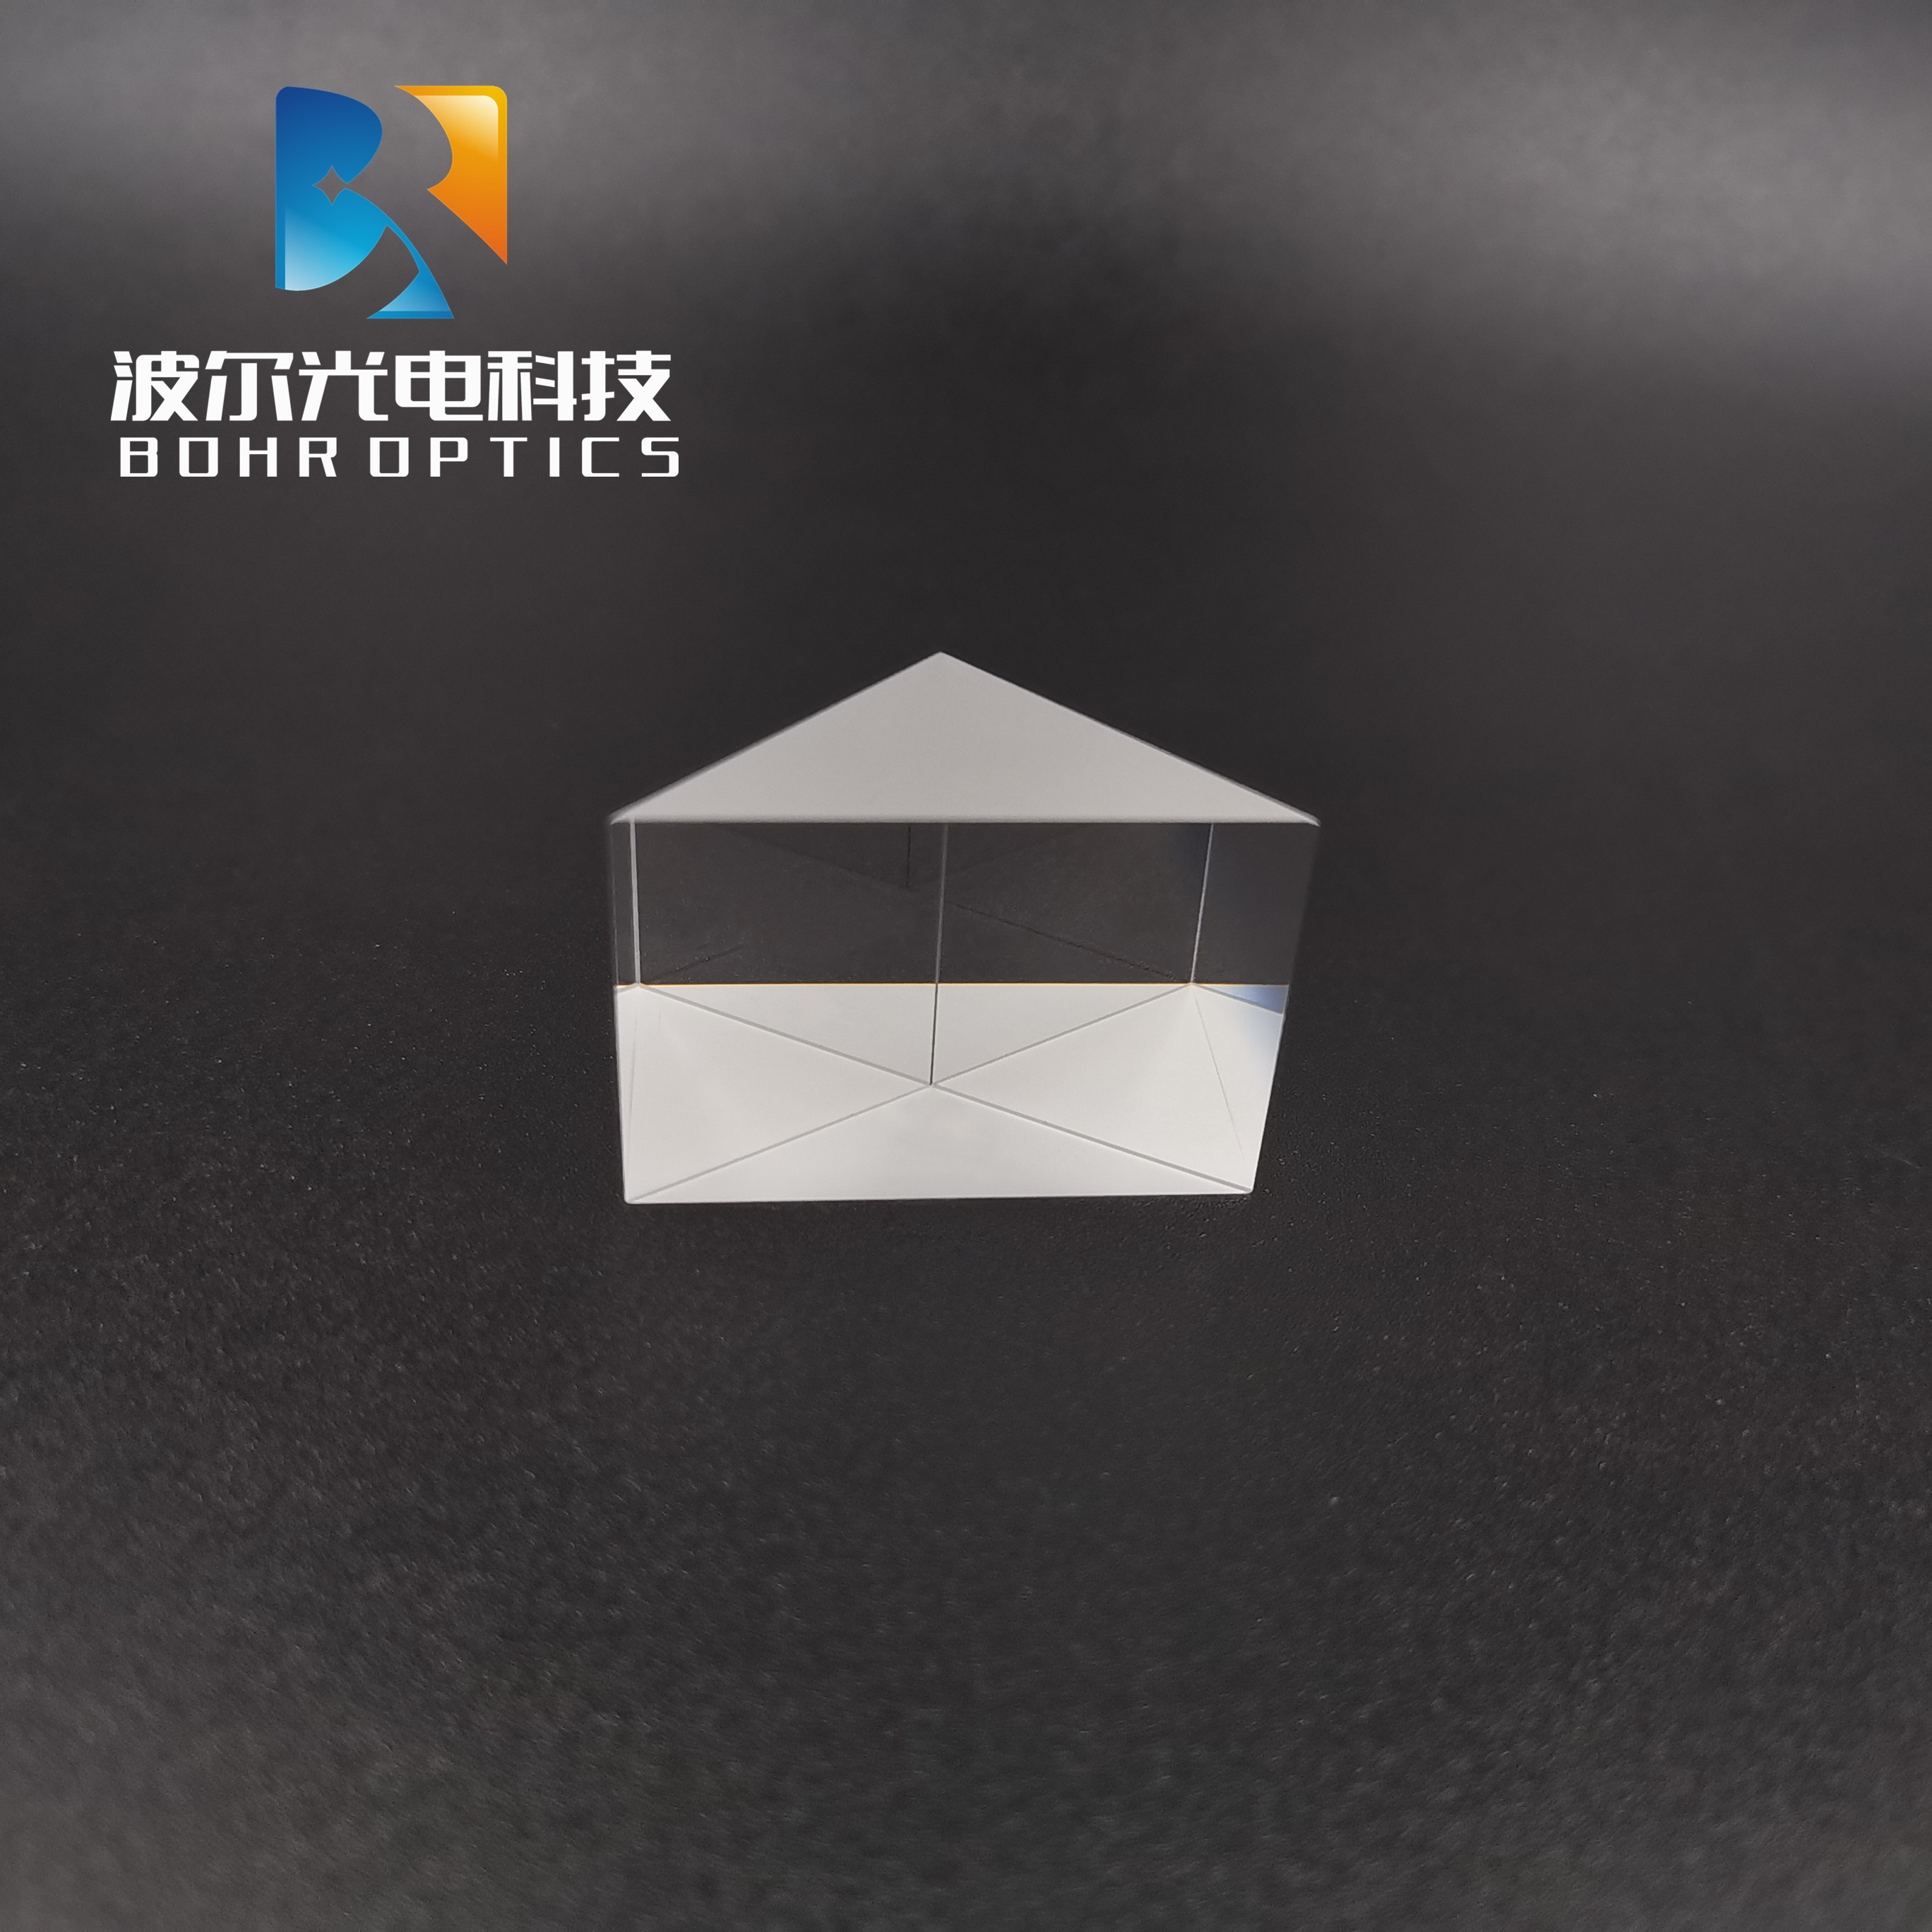 30x30x30mmm No Coating Right Angle Prism N-BK7 (K9) Optical Components Glass for Precision Optical Instruments